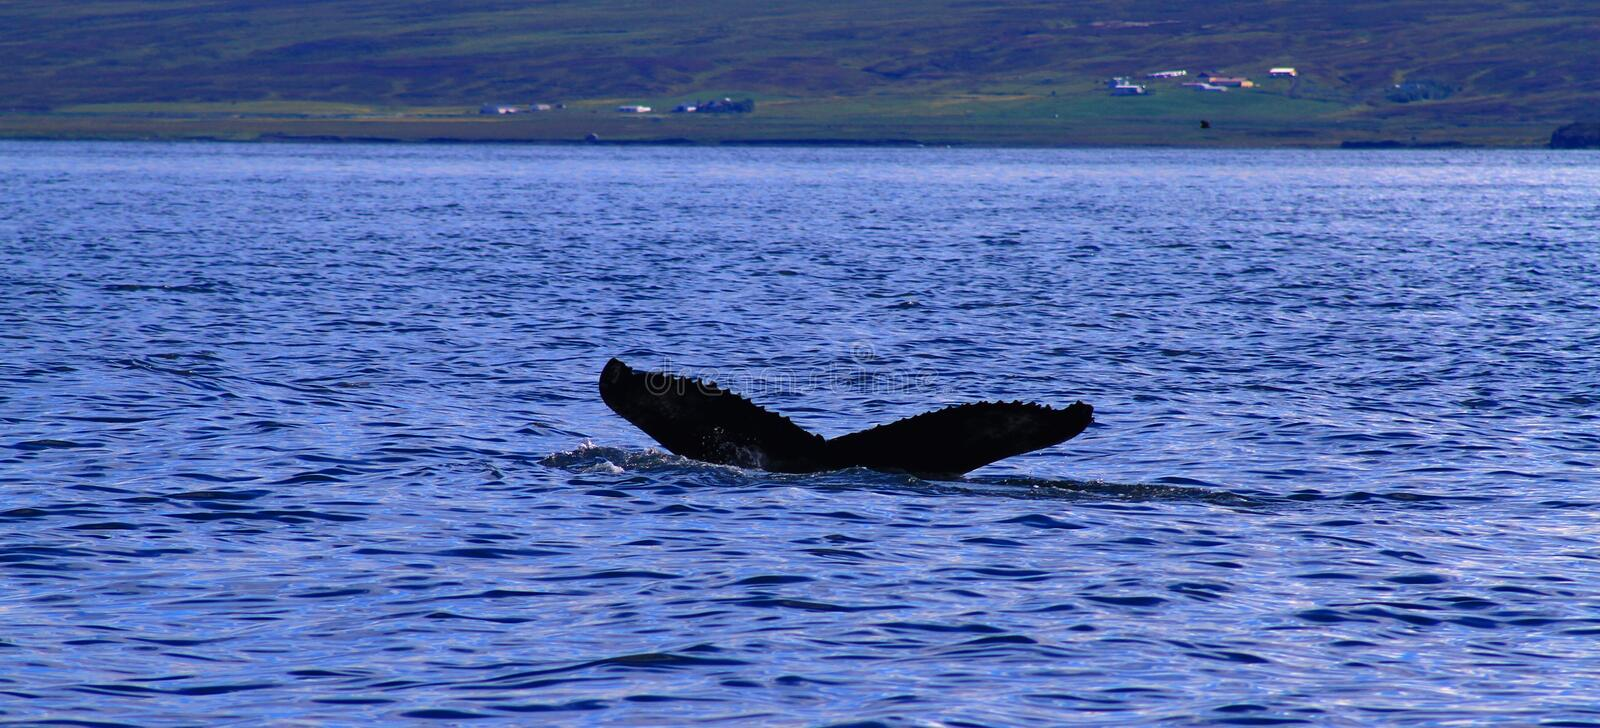 Humpback whale, Iceland. Whale watching near Husavik - tail fin of humpback whale, Iceland stock photography